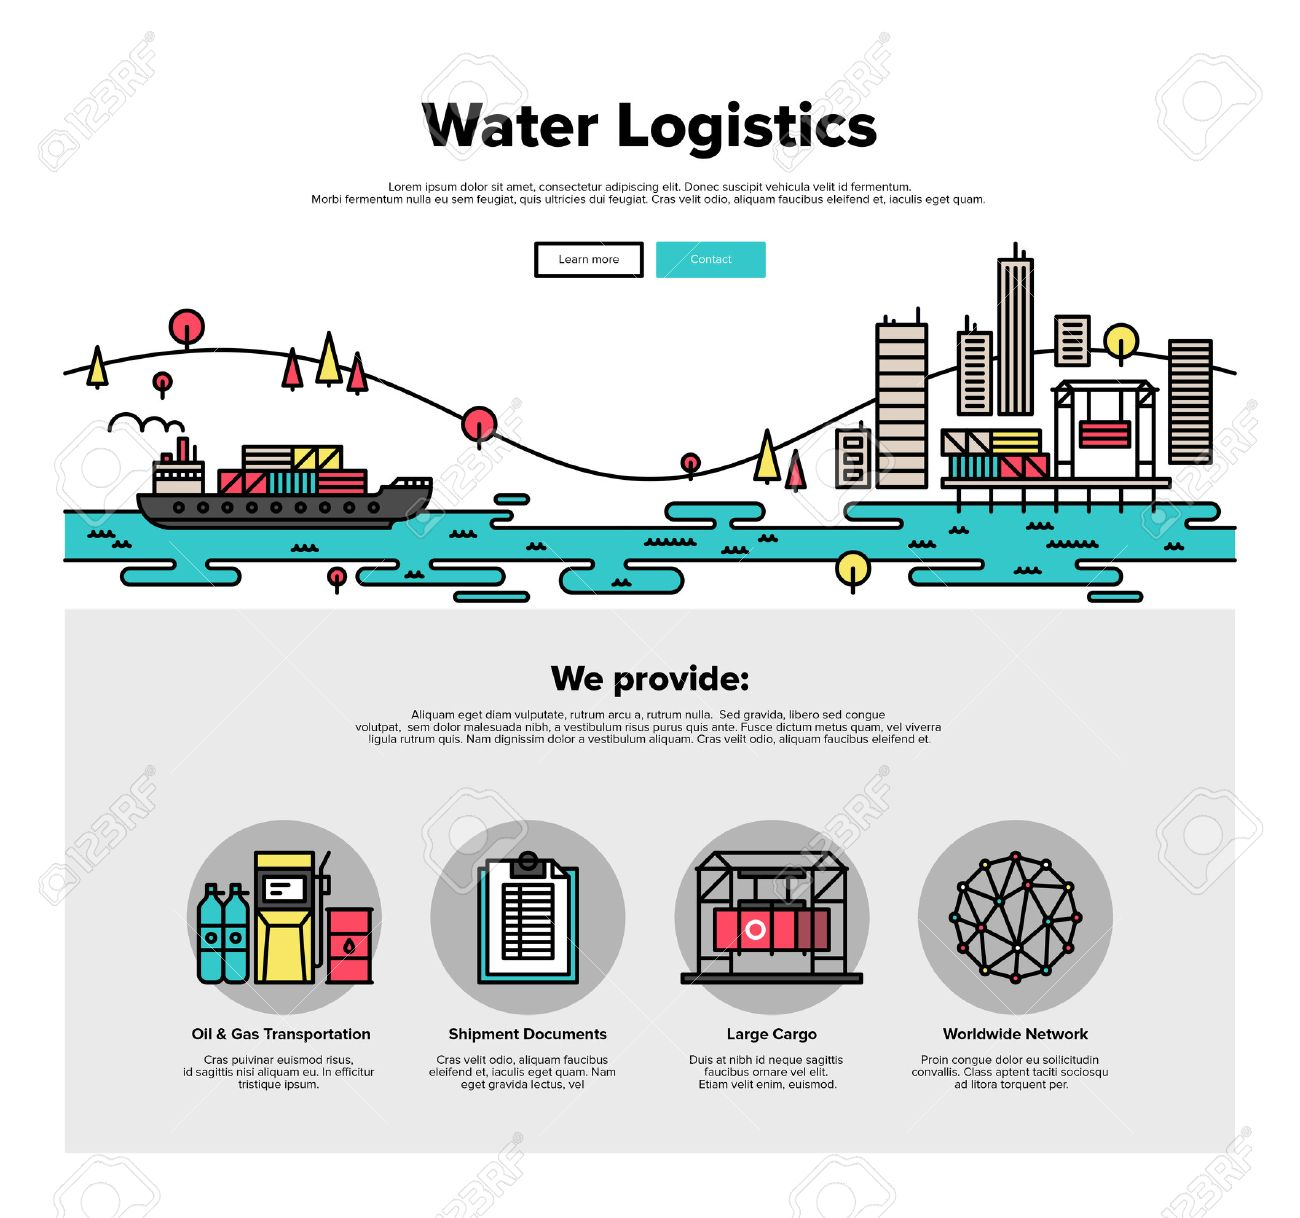 One page web design template with thin line icons of cargo freight shipping by water, sea transport delivery, export logistics control. Flat design graphic hero image concept, website elements layout. Stock Vector - 46612099